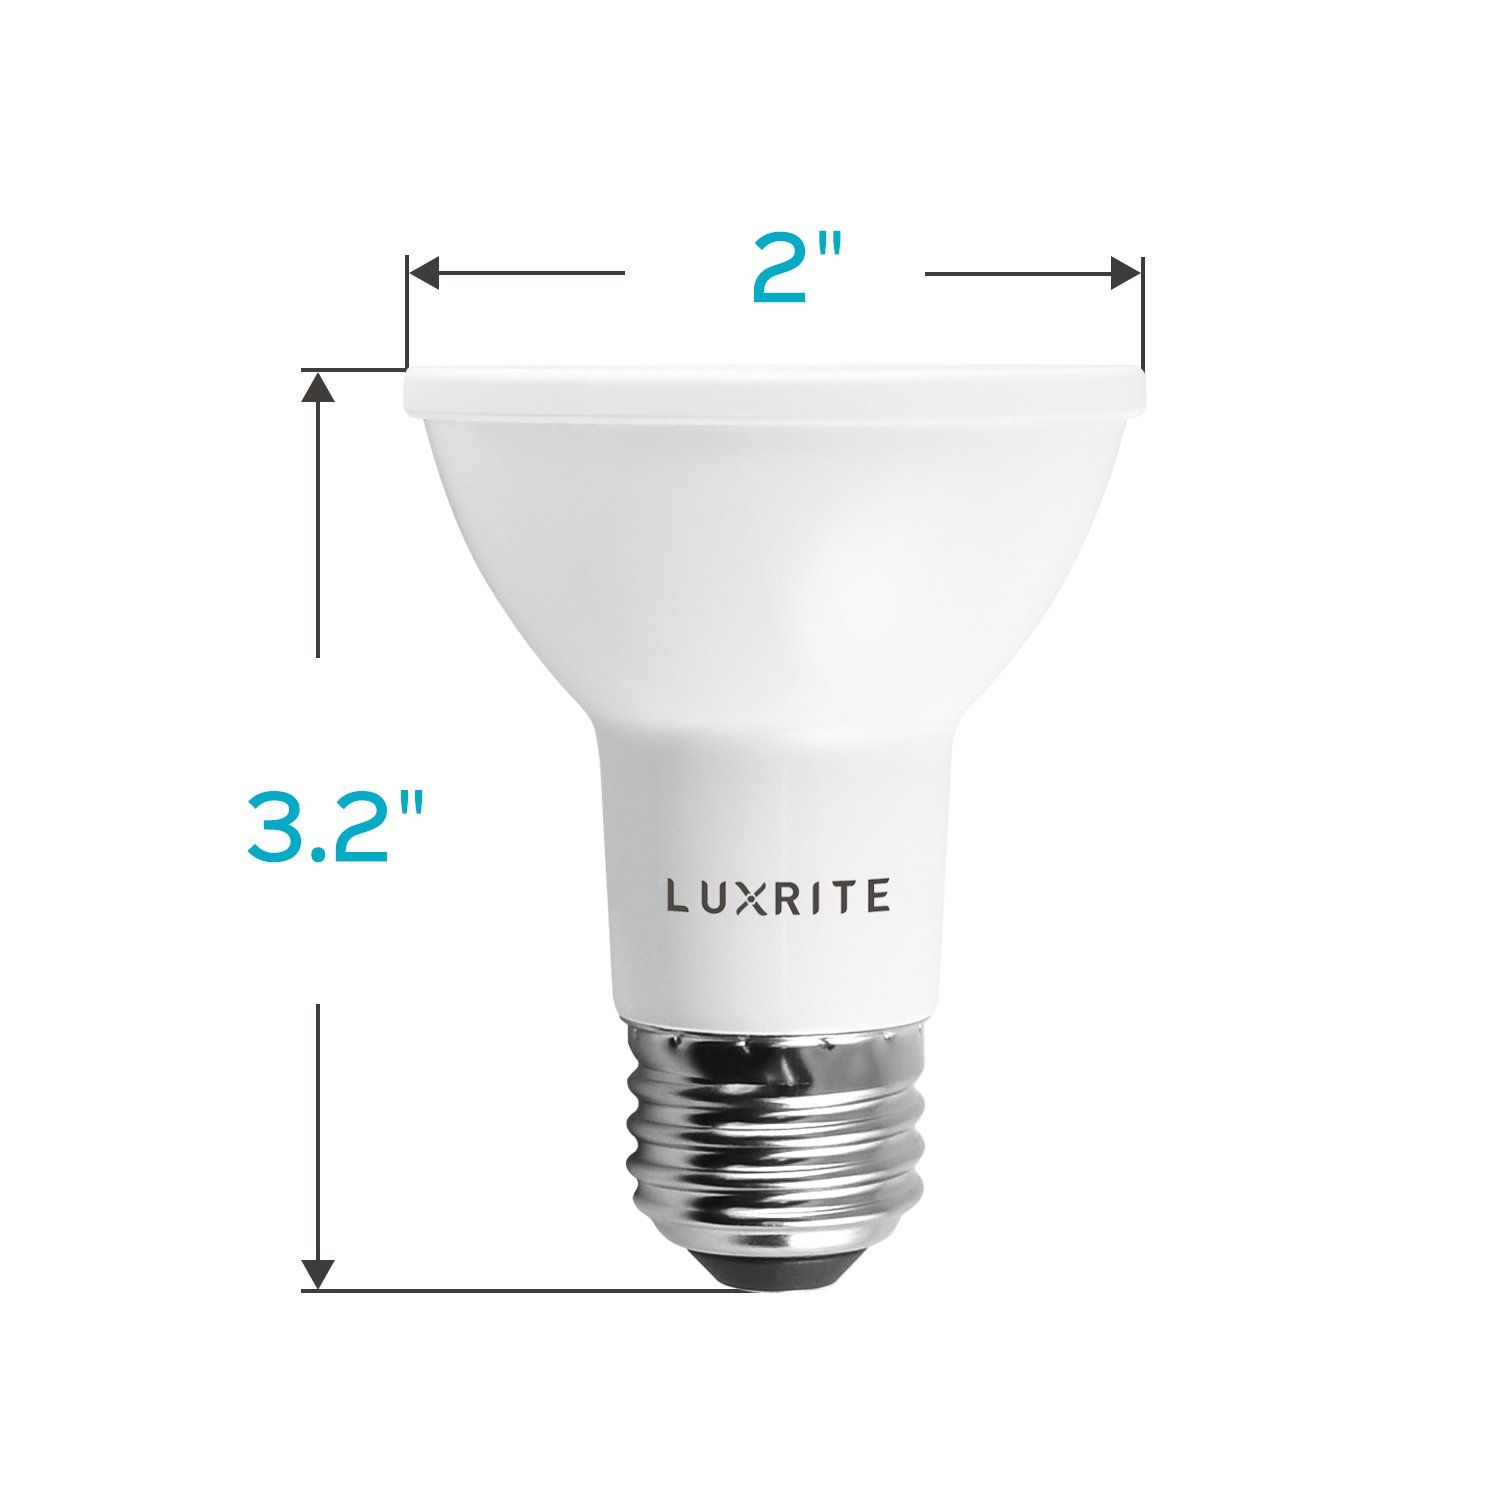 Luxrite Par20 Led Dimmable Bulb 50w Equivalent 4000k Cool White 6 5w Led Spotlight Bulb 460 Lumens Energy Star And Ul Spotlight Bulbs Led Spotlight Light Bulb